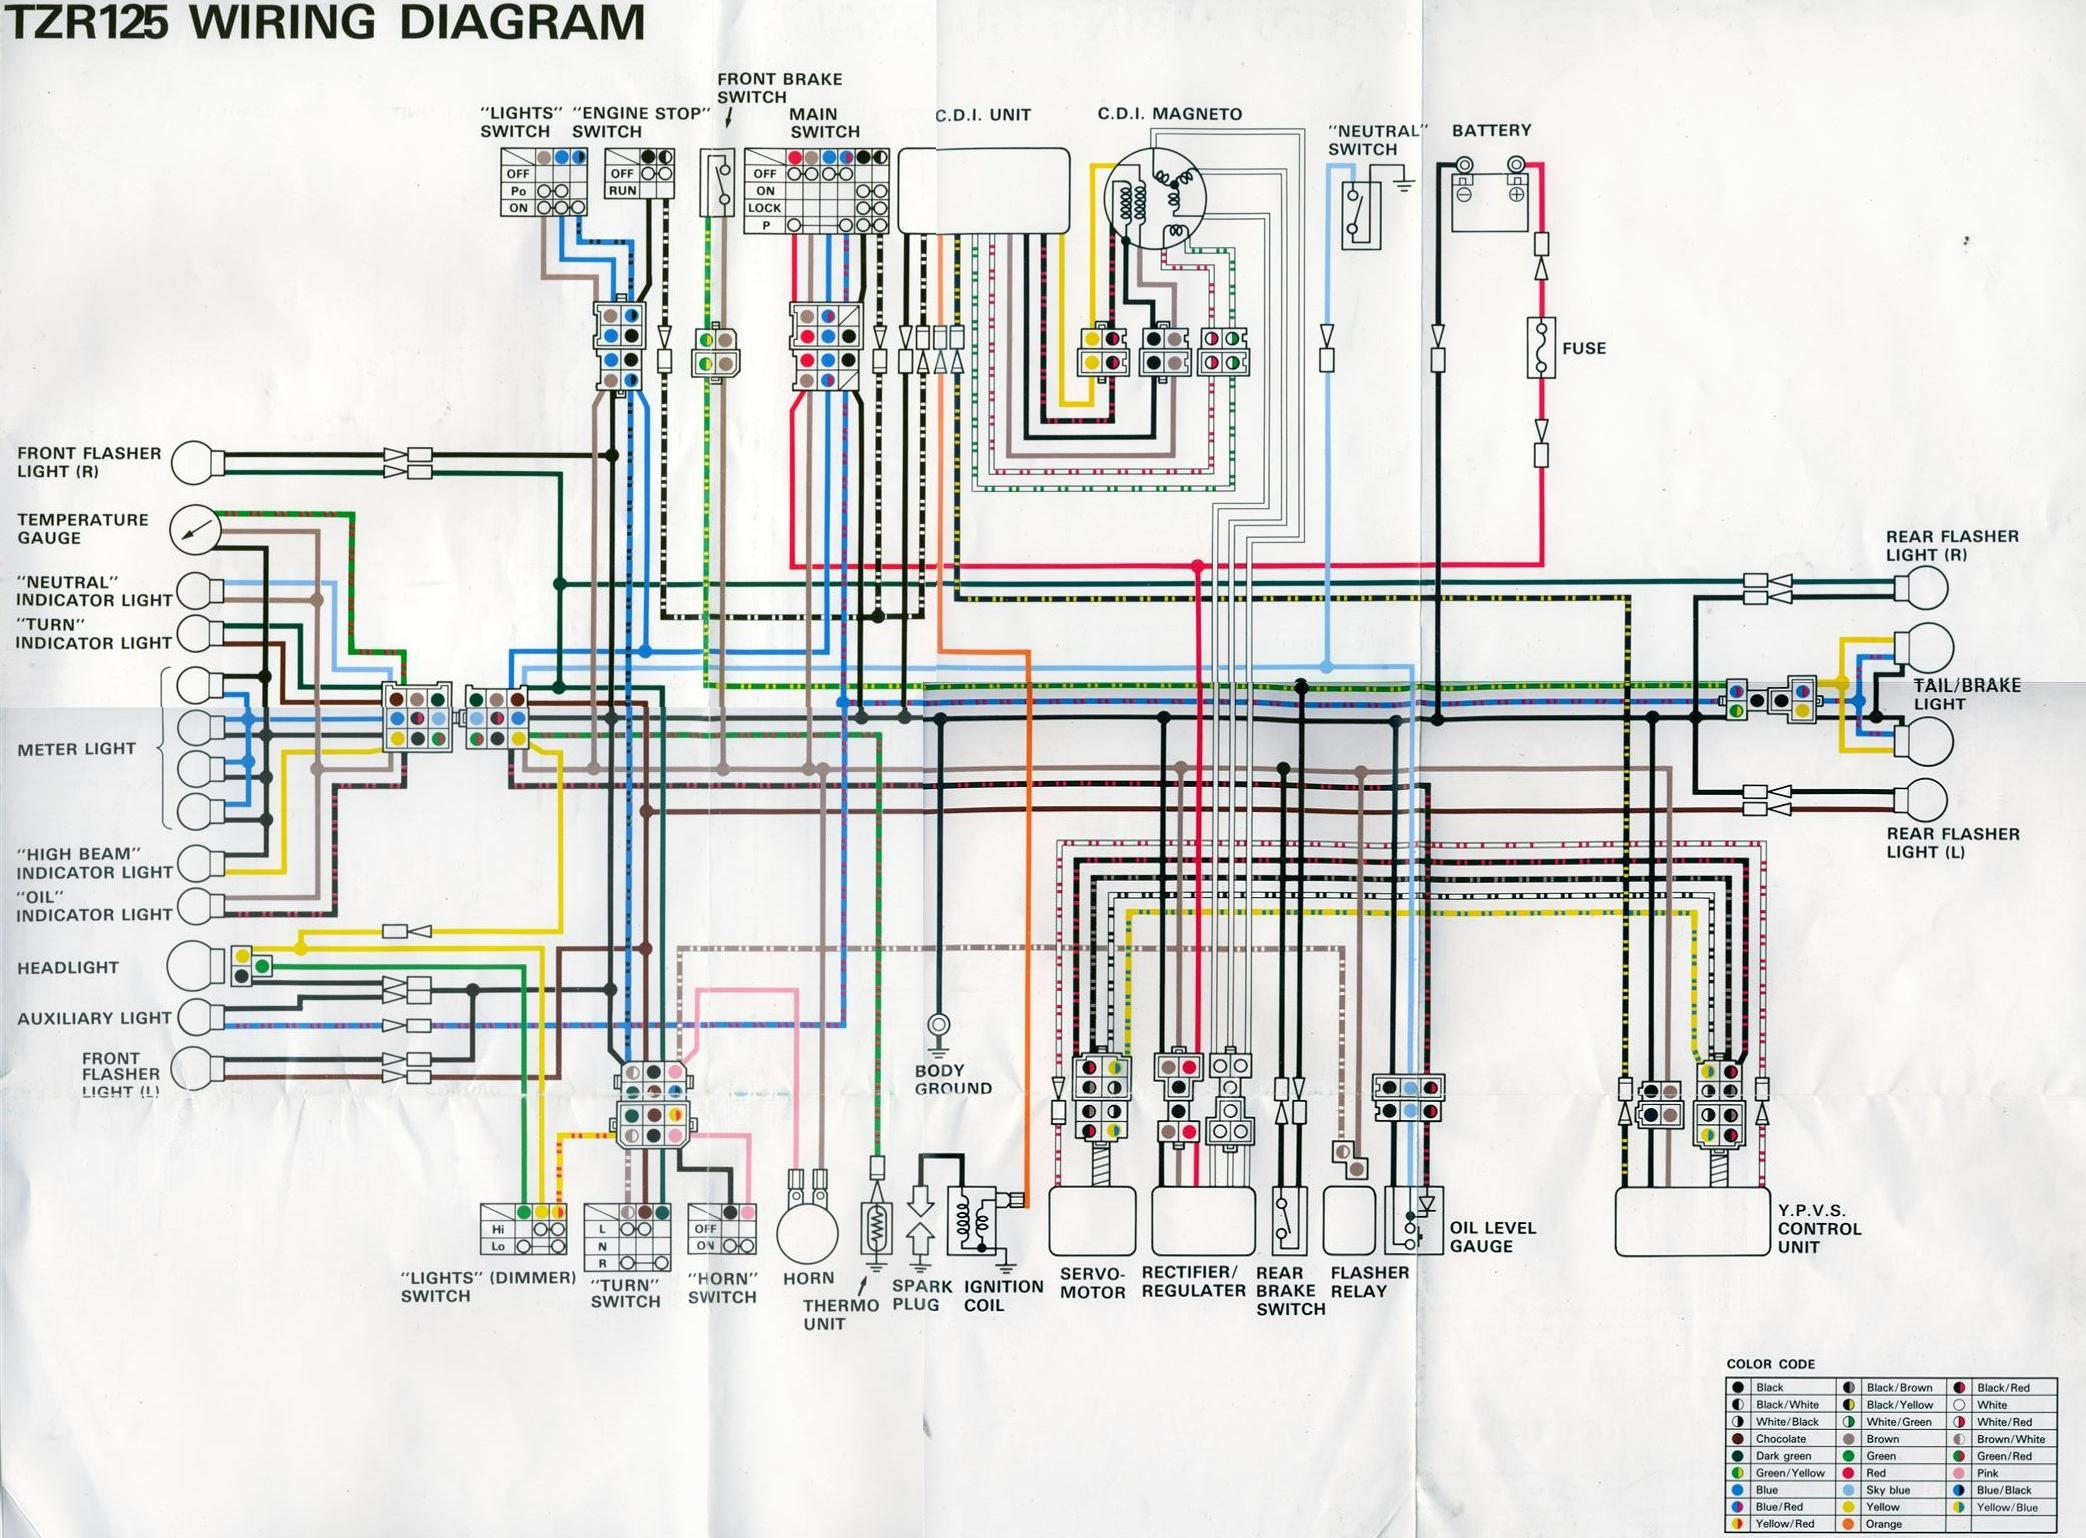 2015 Tao 50cc Engine Diagram Simple Guide About Wiring 50 Scooter Taotao 110cc